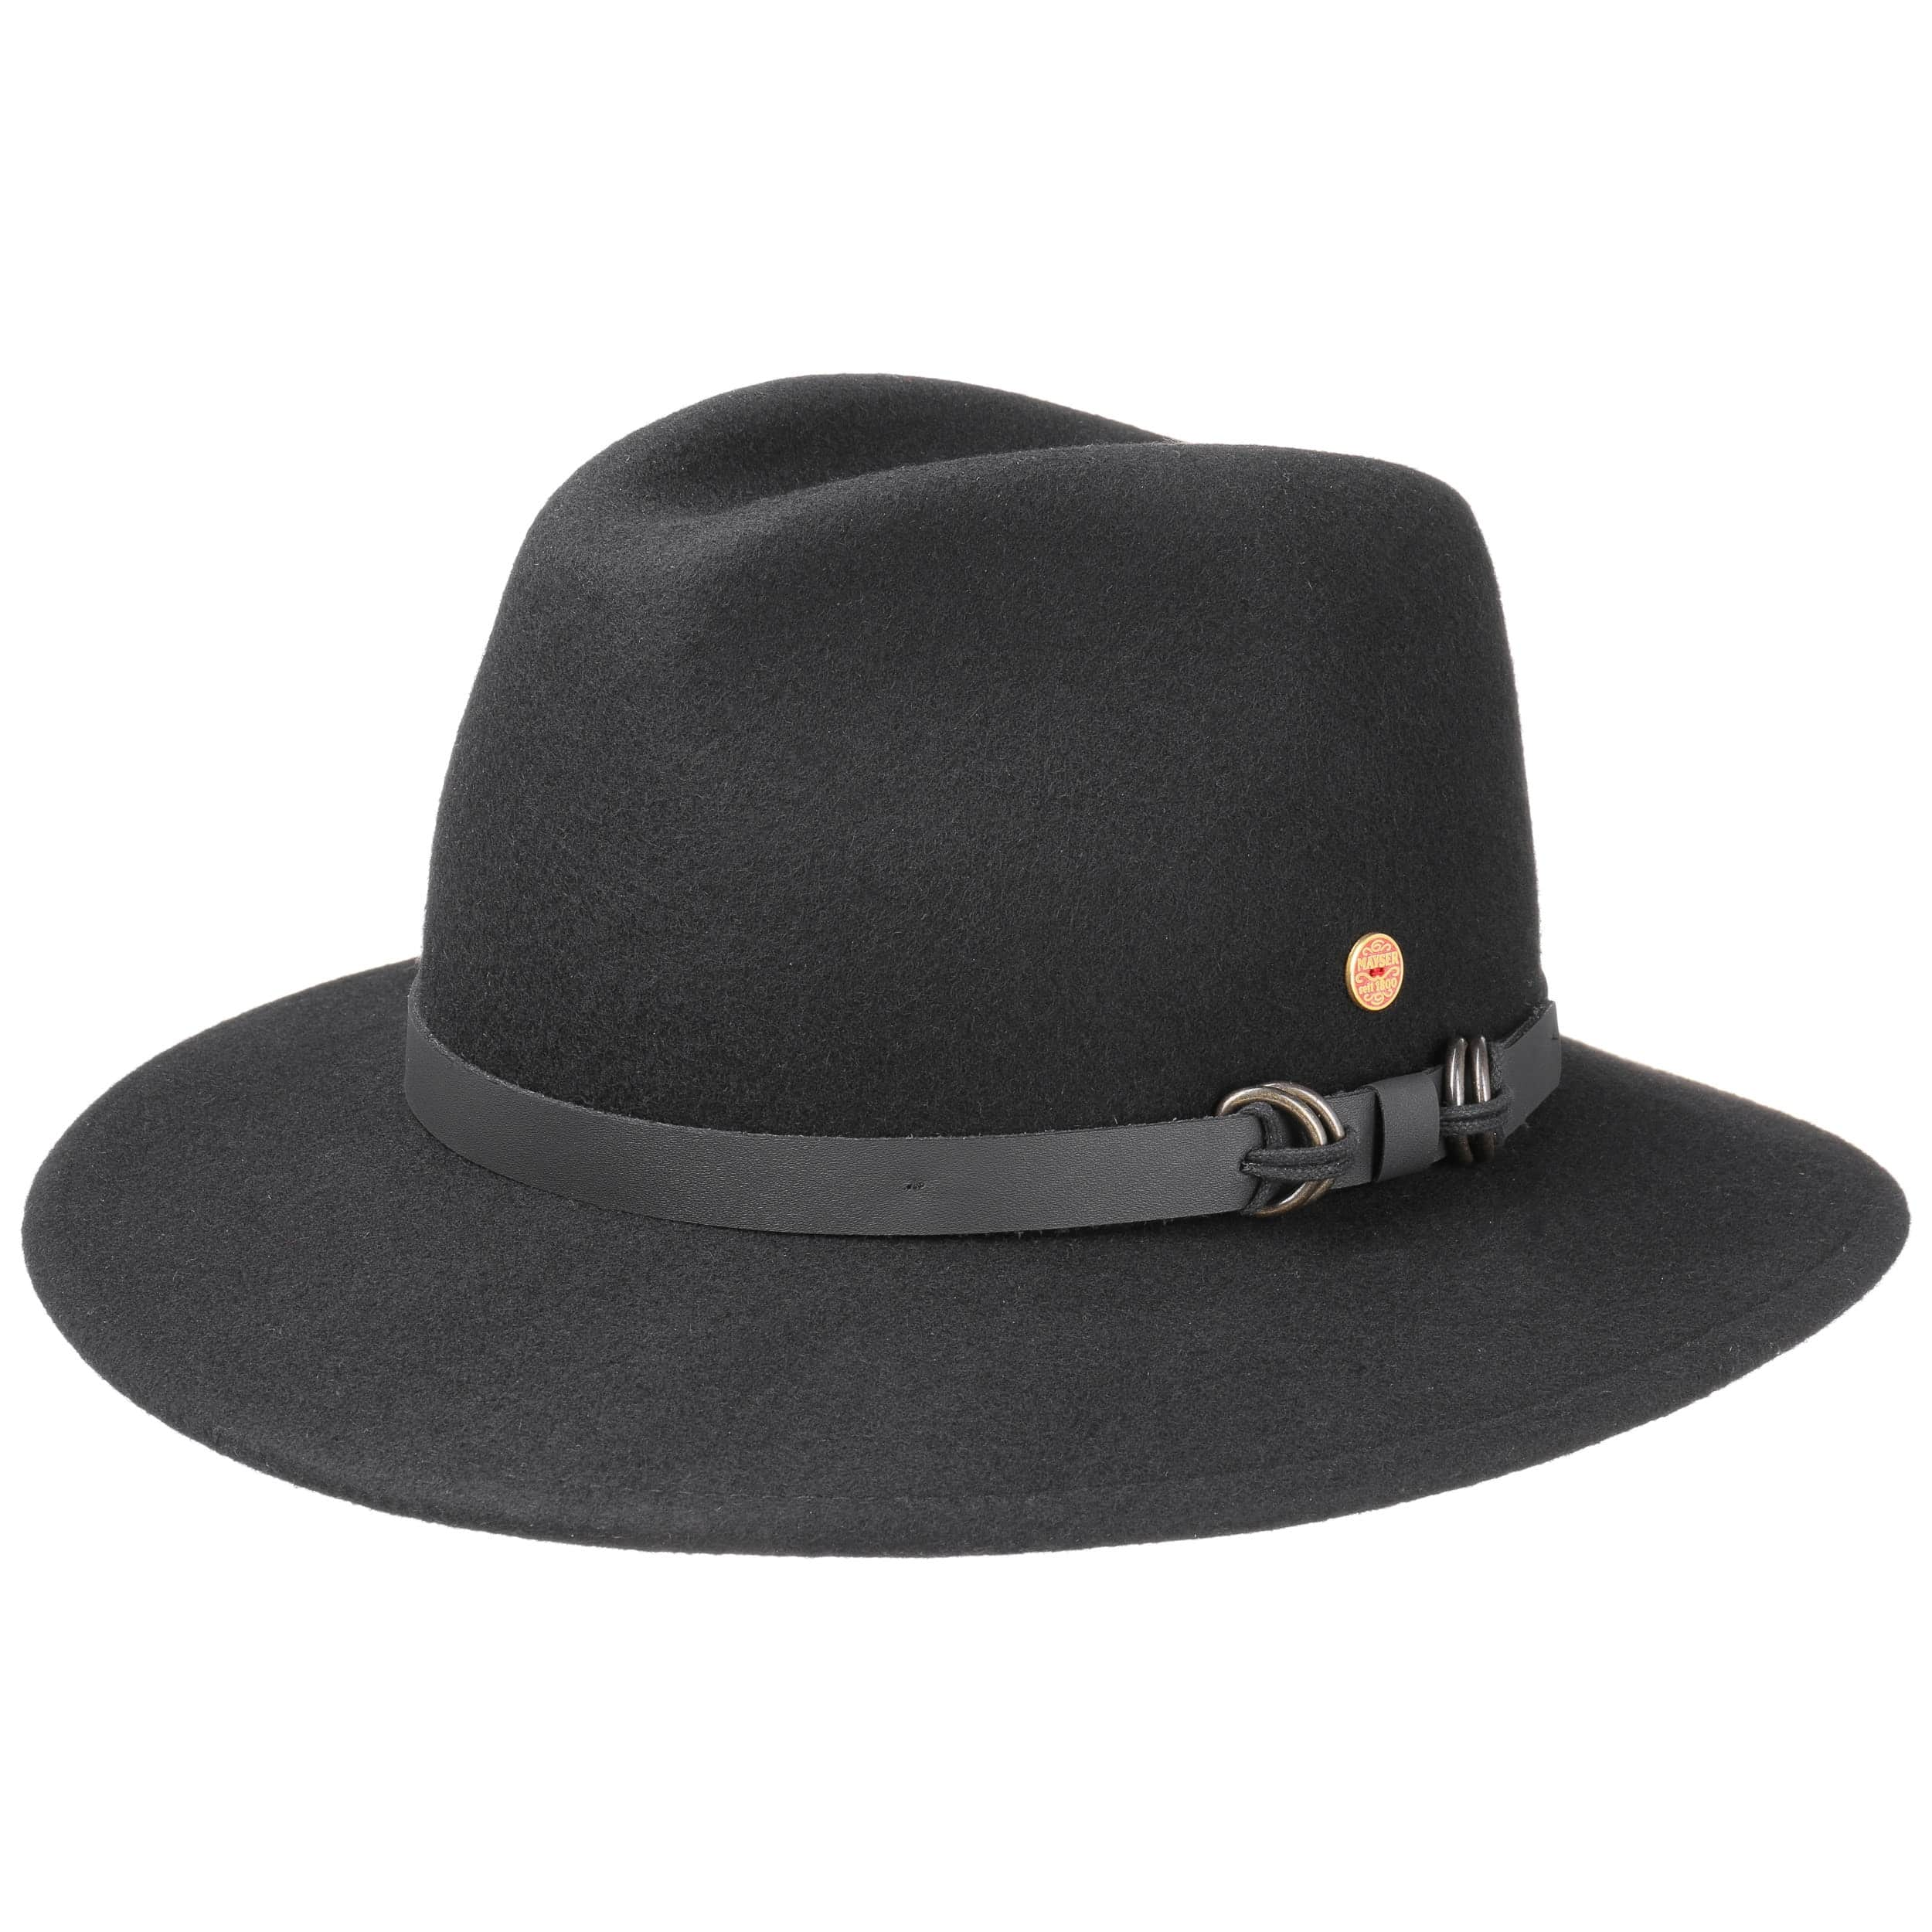 367532d8573 ... buy baron georgia outdoor hat by mayser black 4 84687 4604d